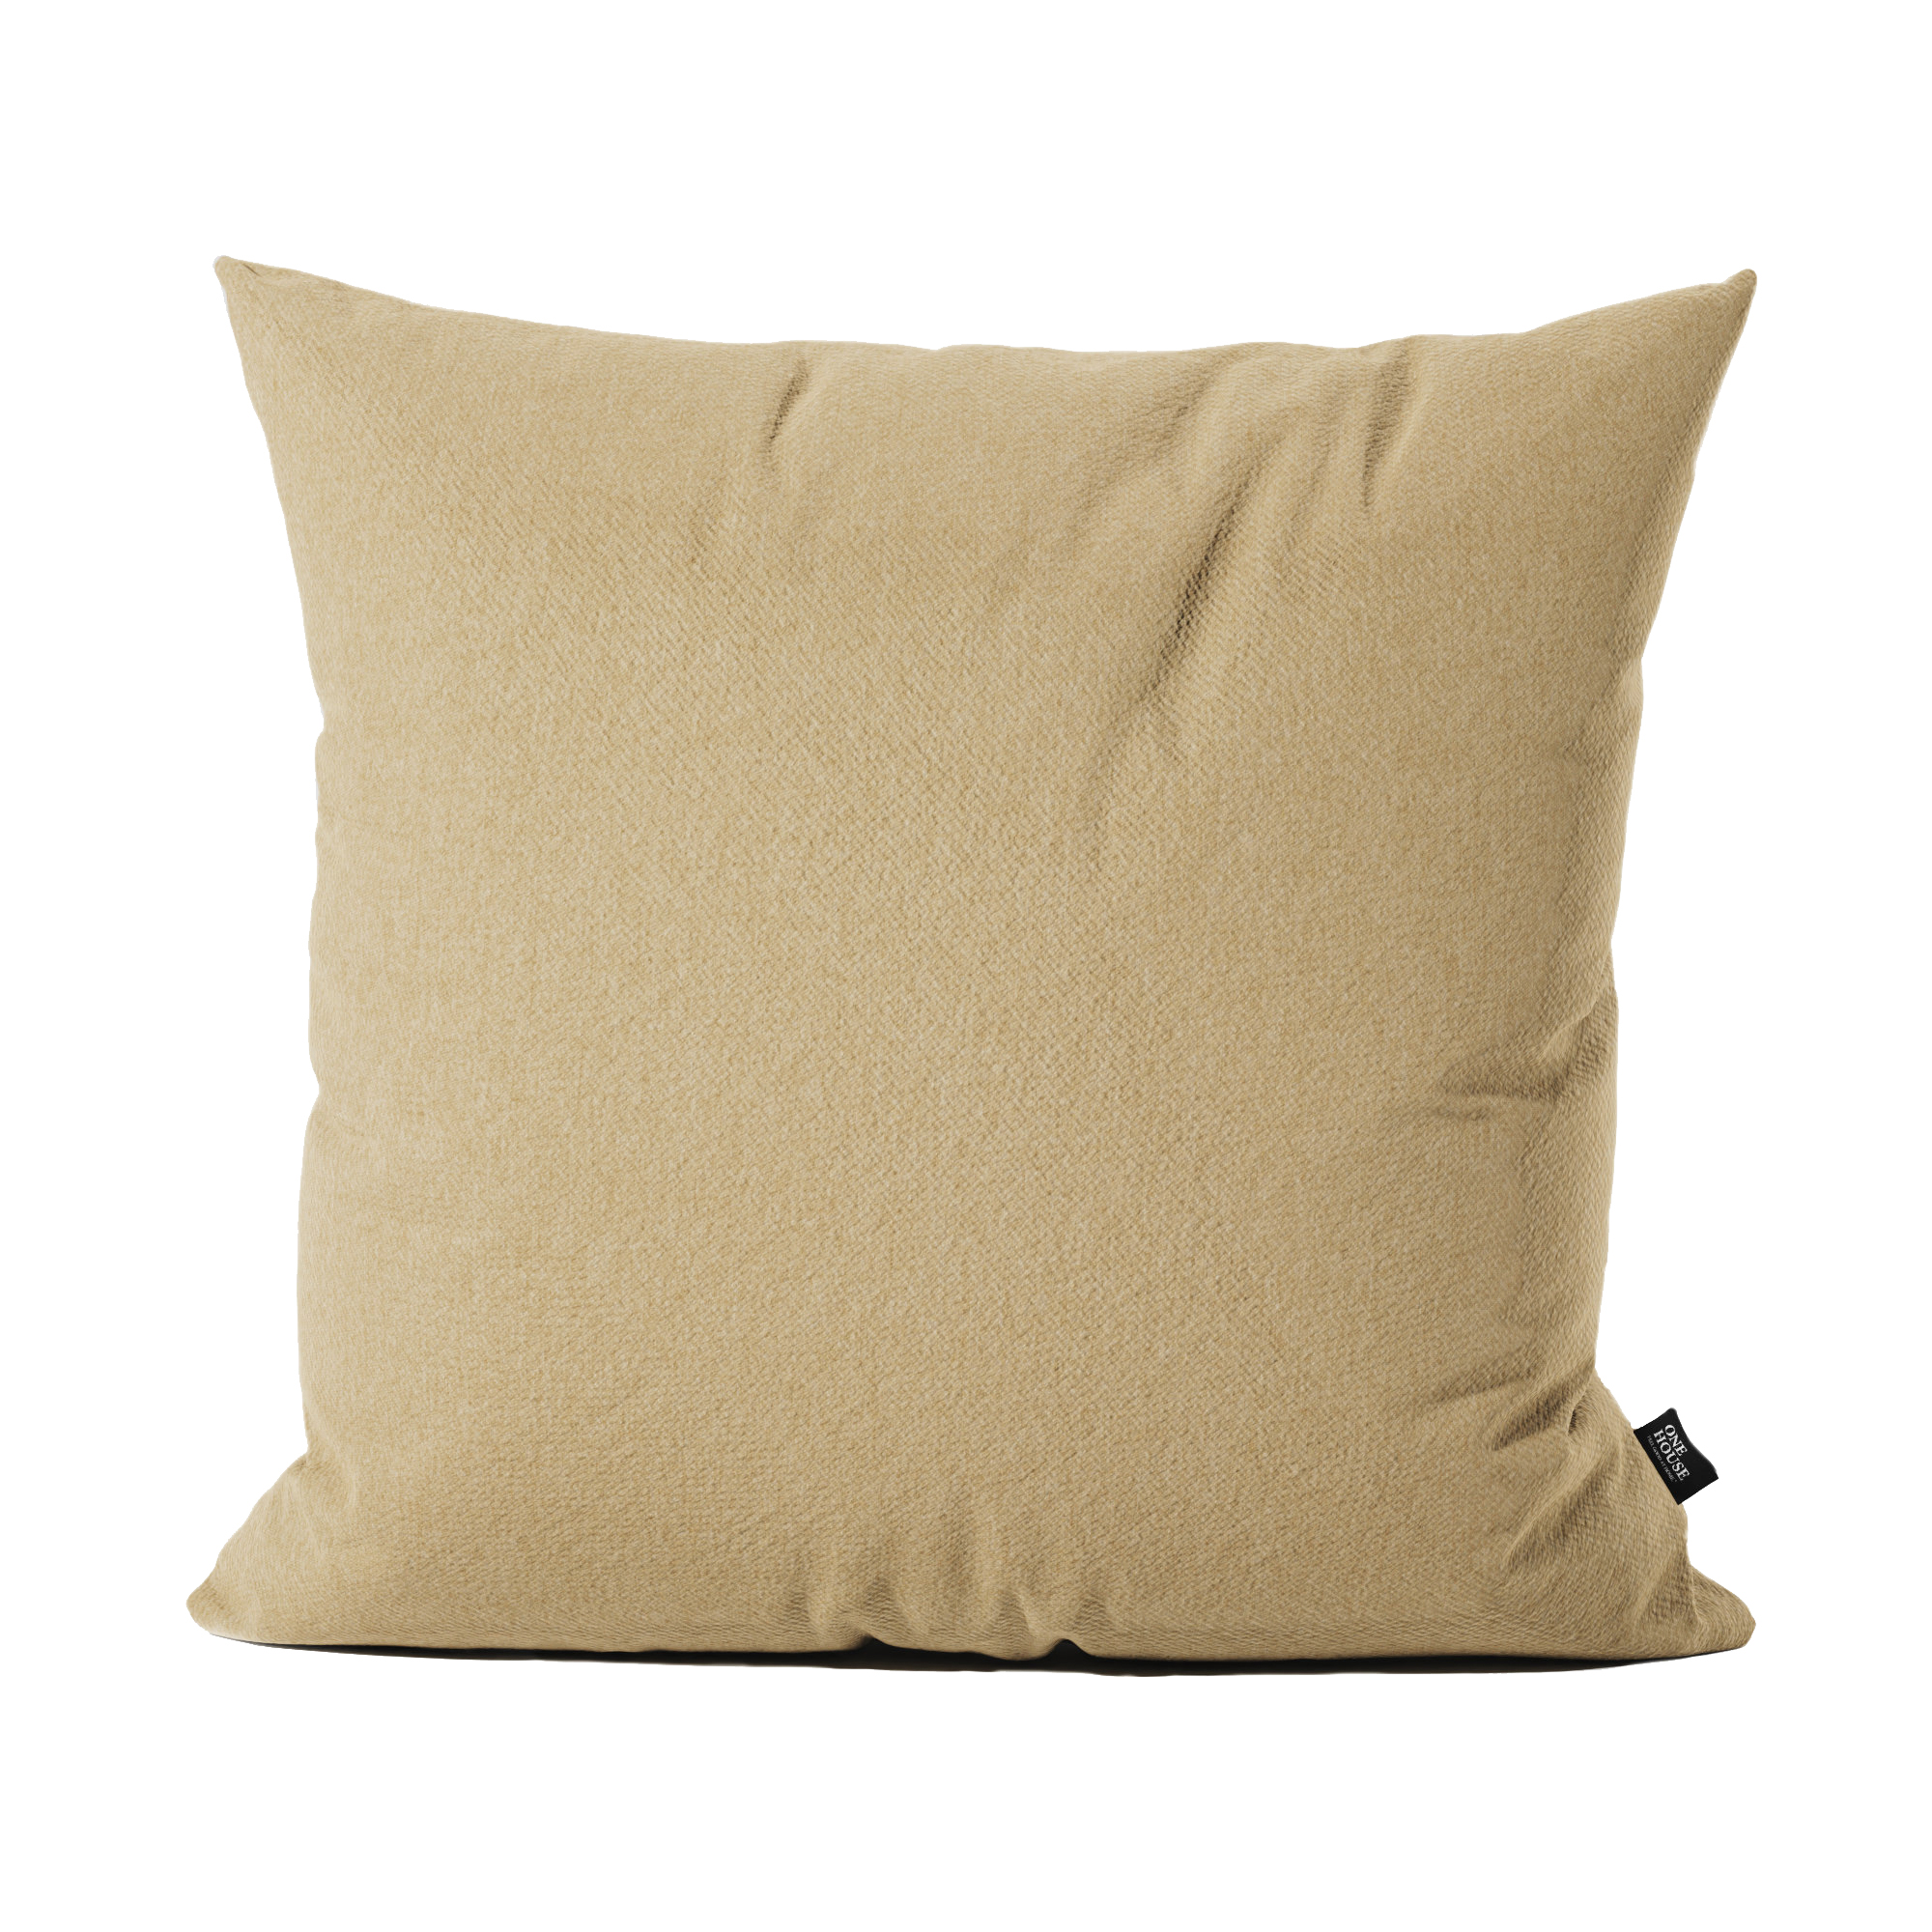 Roman pale - Monumental buildings and arenas of the Romans influenced the design of this classic earthy color. The cushion's fabric impresses with a soft and natural look.